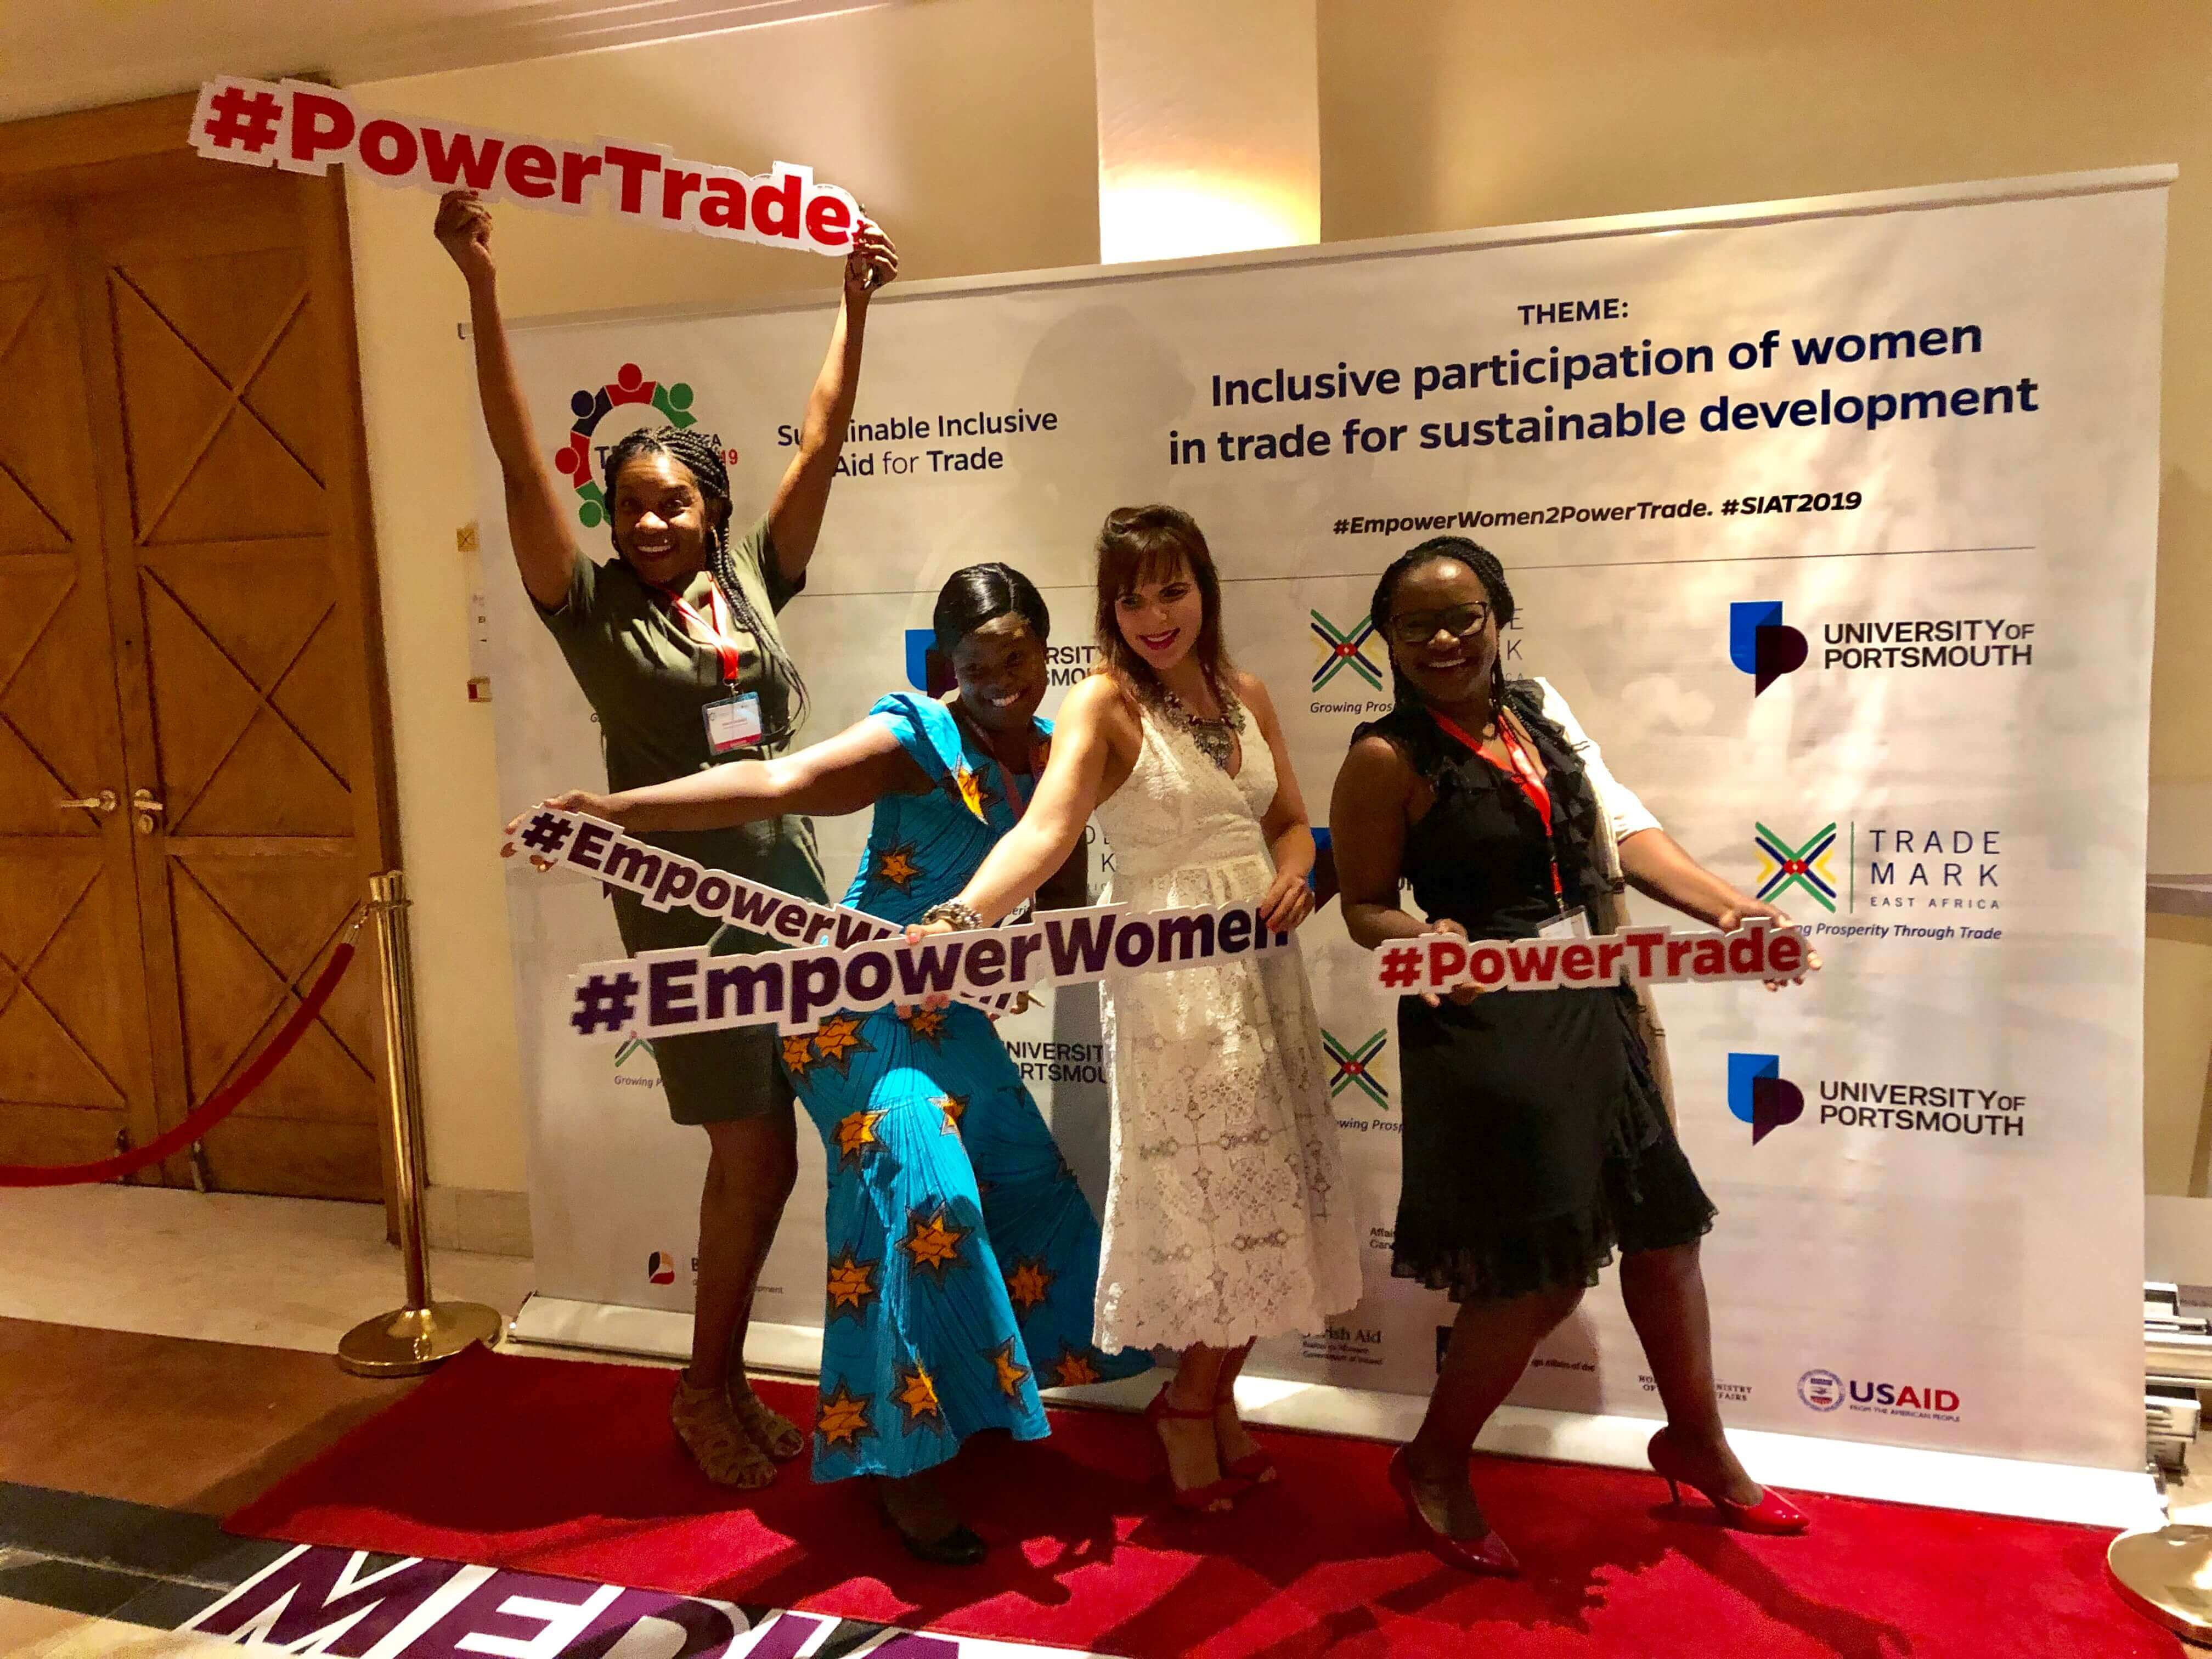 IMPROVING GENDER EQUALITY IN TRADE AS A WAY OF AIDING DEVELOPMENT